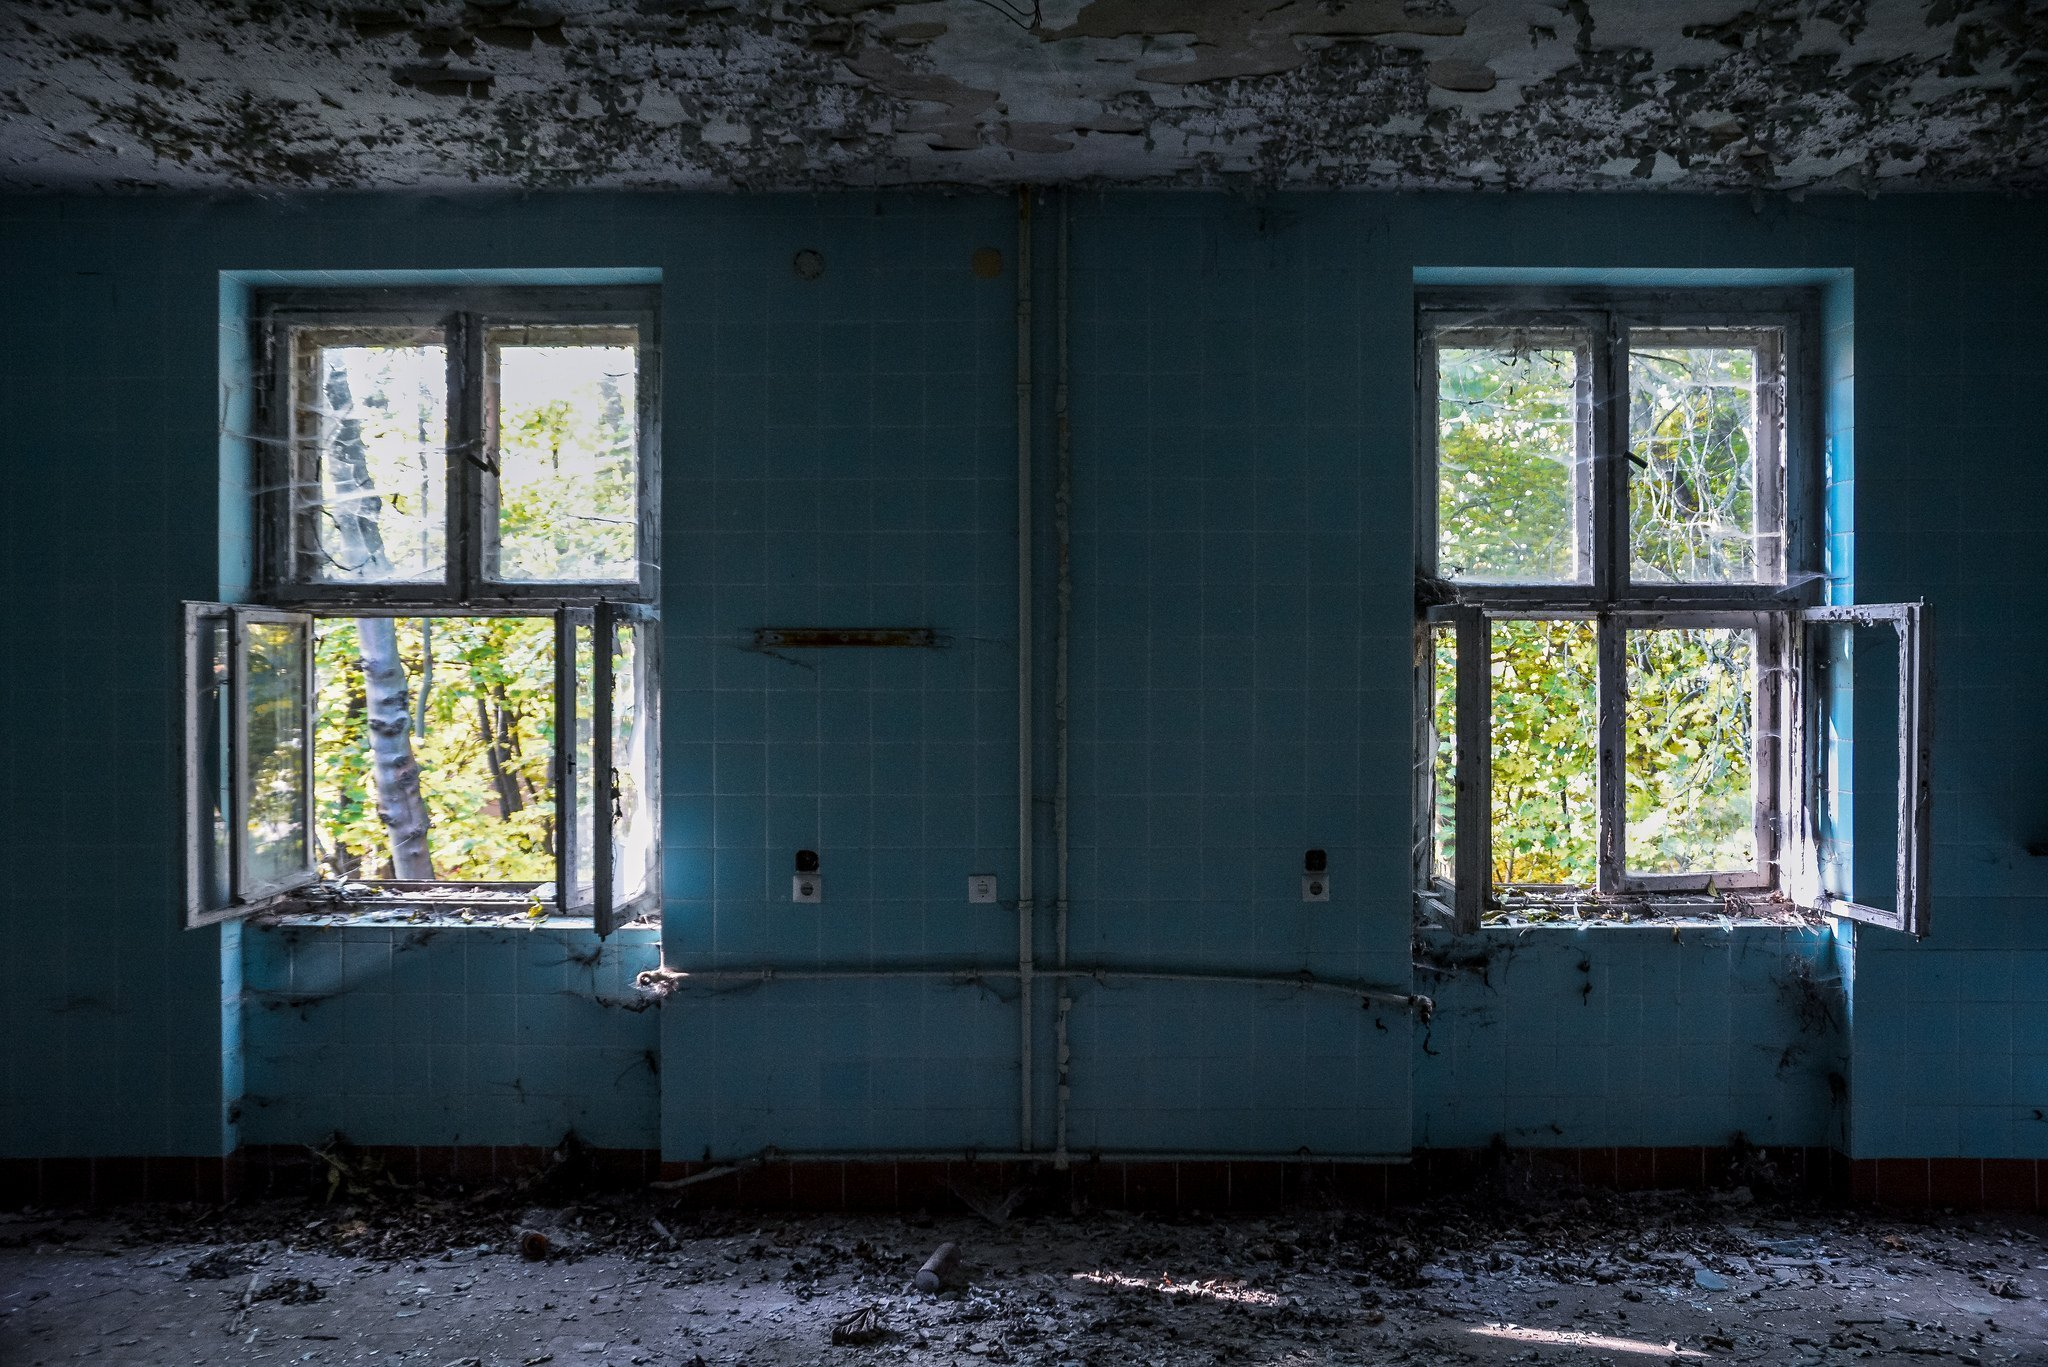 abandoned hospital berlin verlassenes krankenhaus lost places urbex blue room